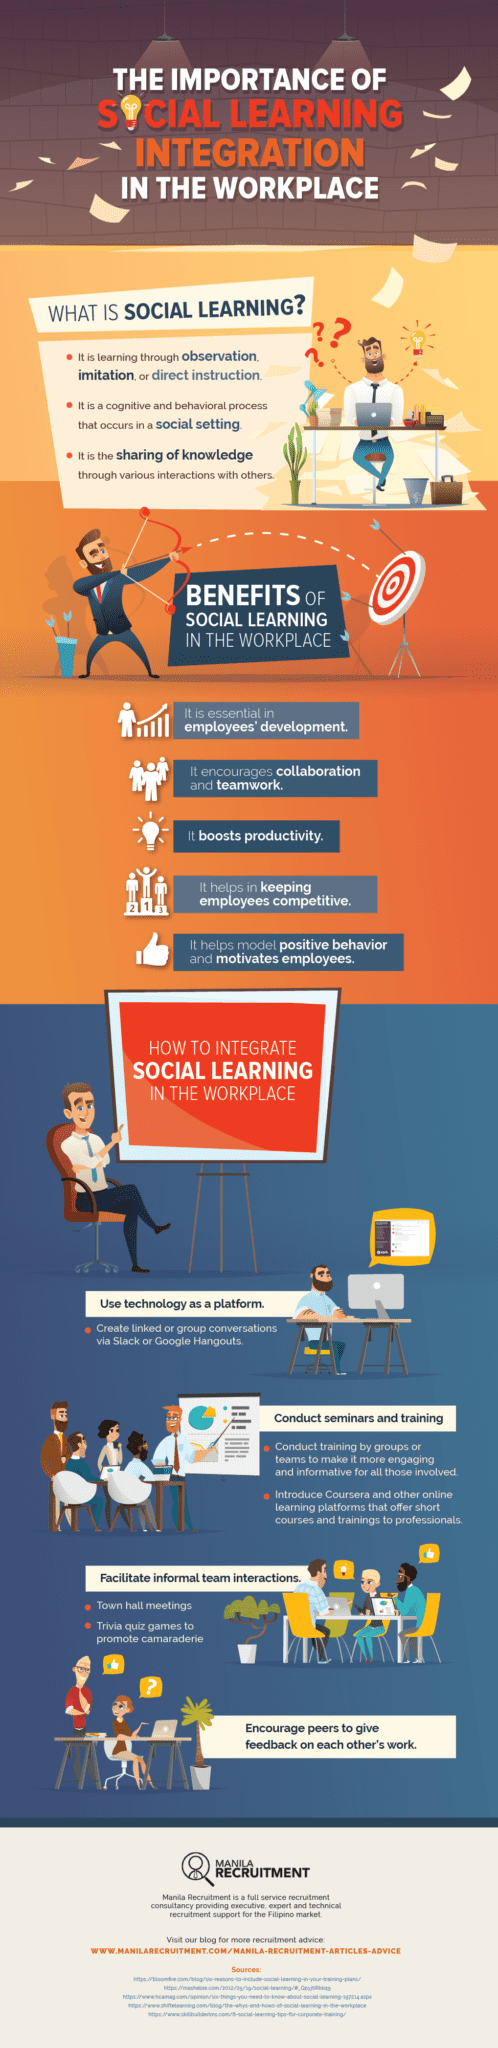 Infographic on the importance of social learning integration in the workplace